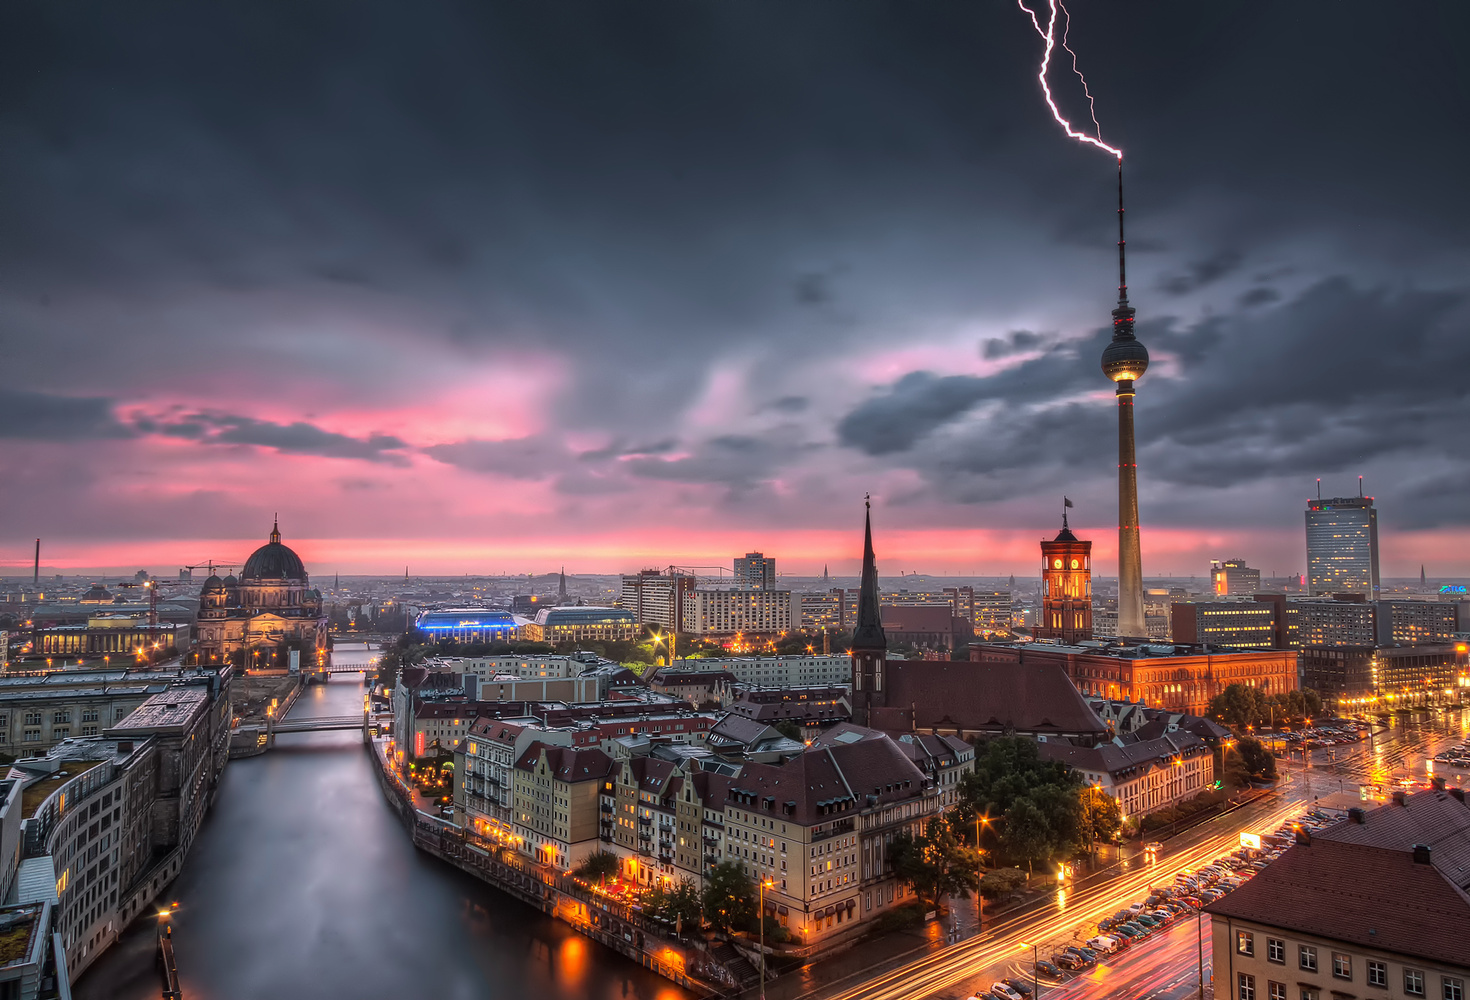 Thunderstorm at Alexanderplatz | Berlin, Germany by Nico Trinkhaus